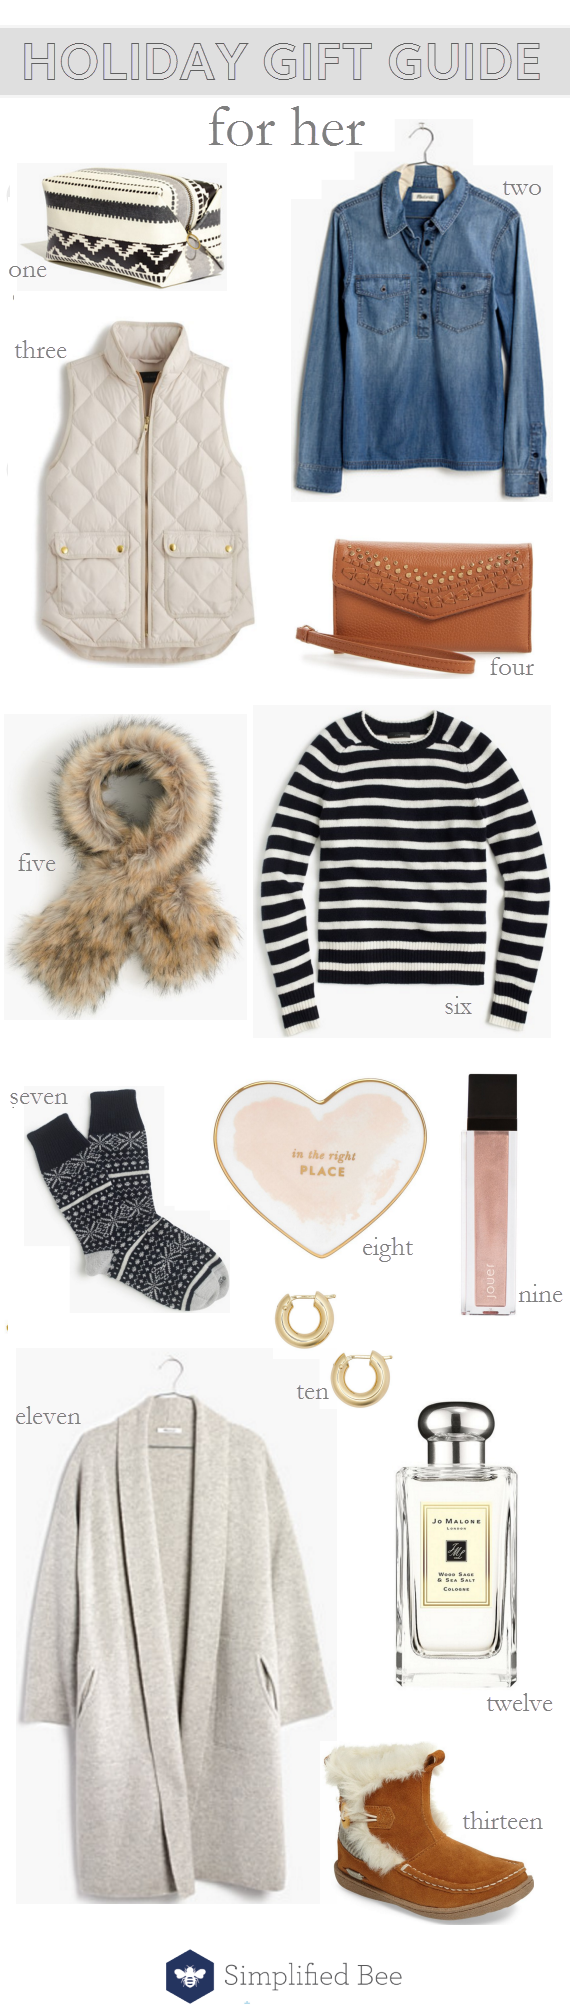 holiday gift guide 2016 // for her #giftguide #holiday #fashion